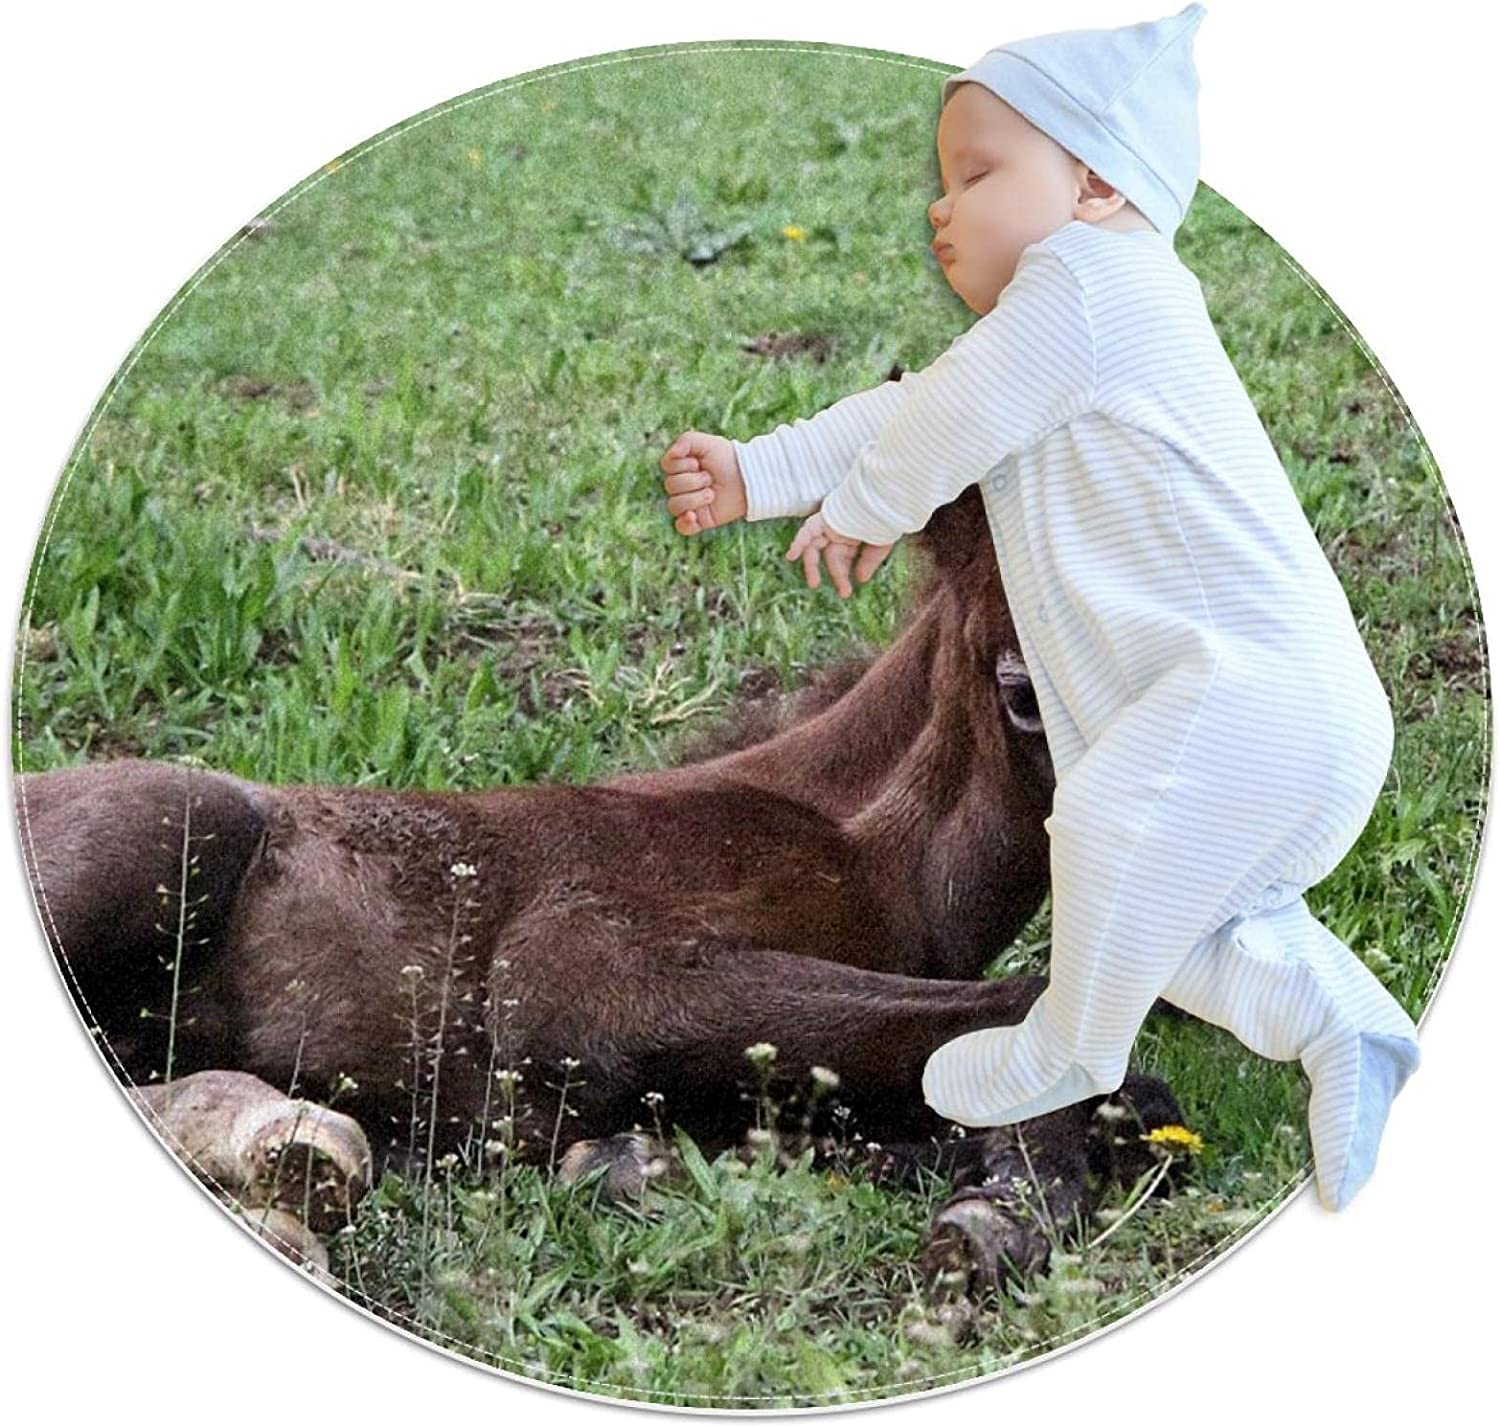 Pony 5 popular Animal Kids Polyester Play Crawling Soft Directly managed store Detachabl Mat